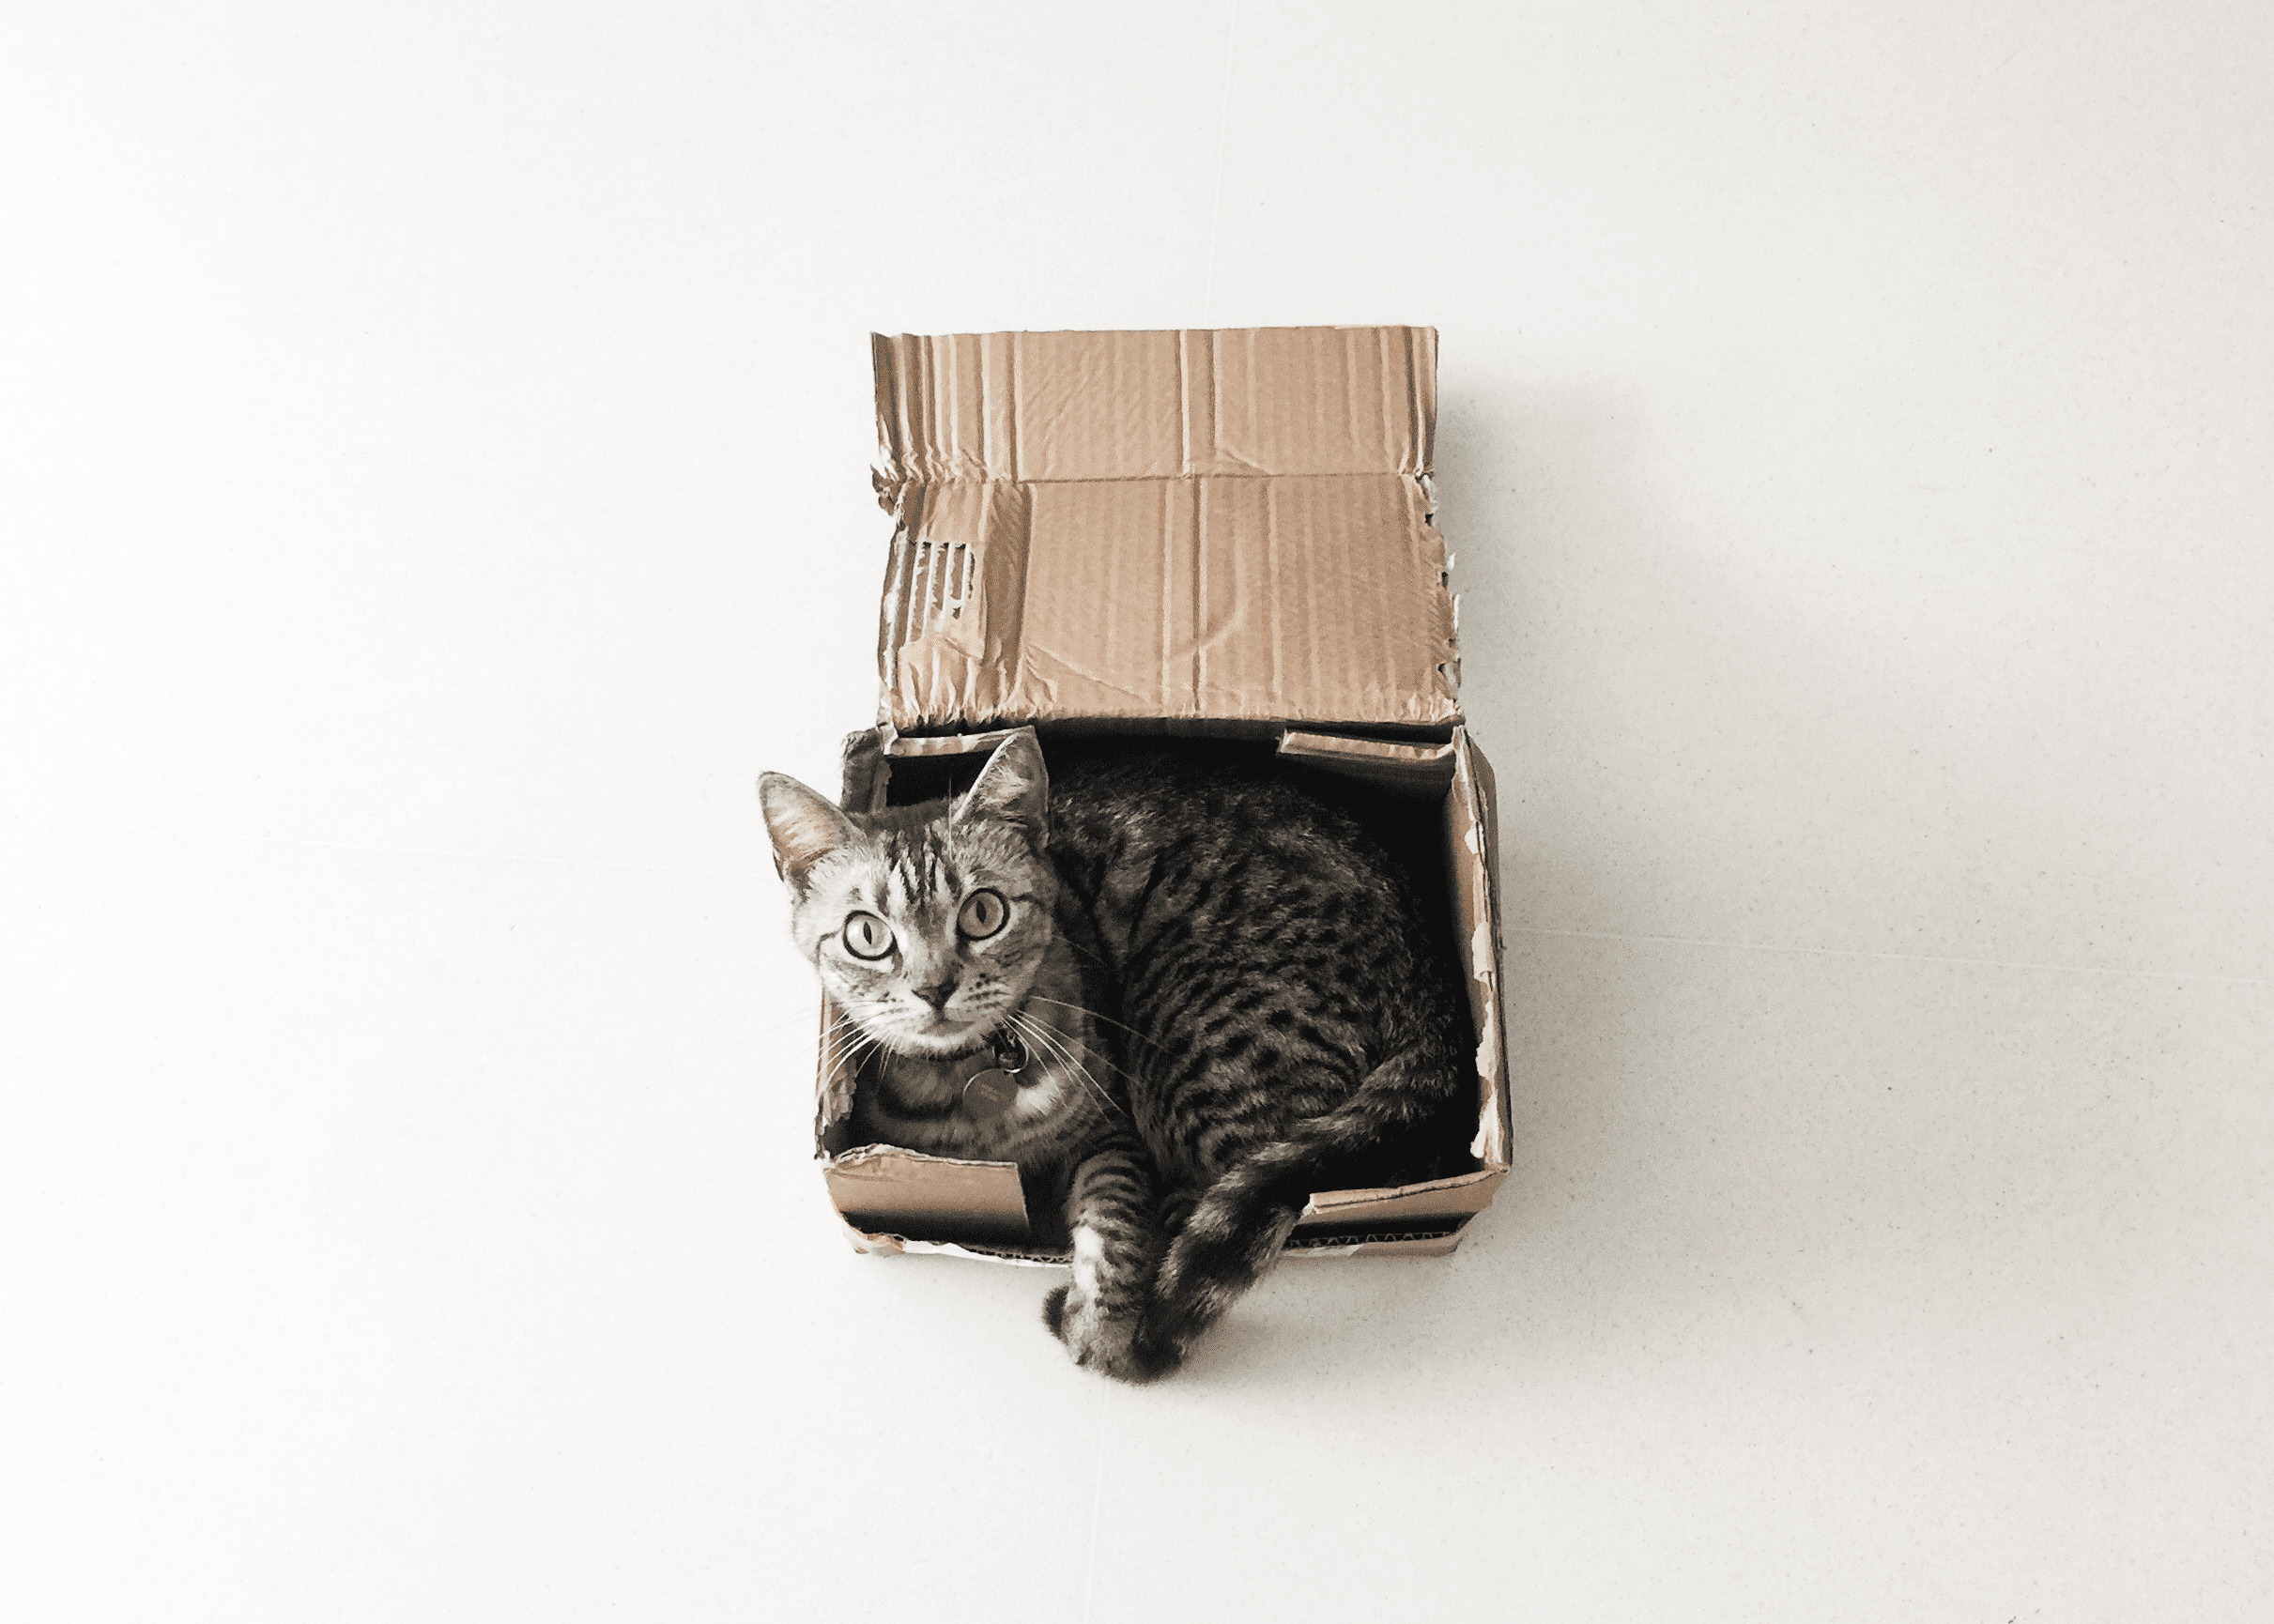 Erwin Schrödinger and the Schrödinger's Cat Thought Experiment